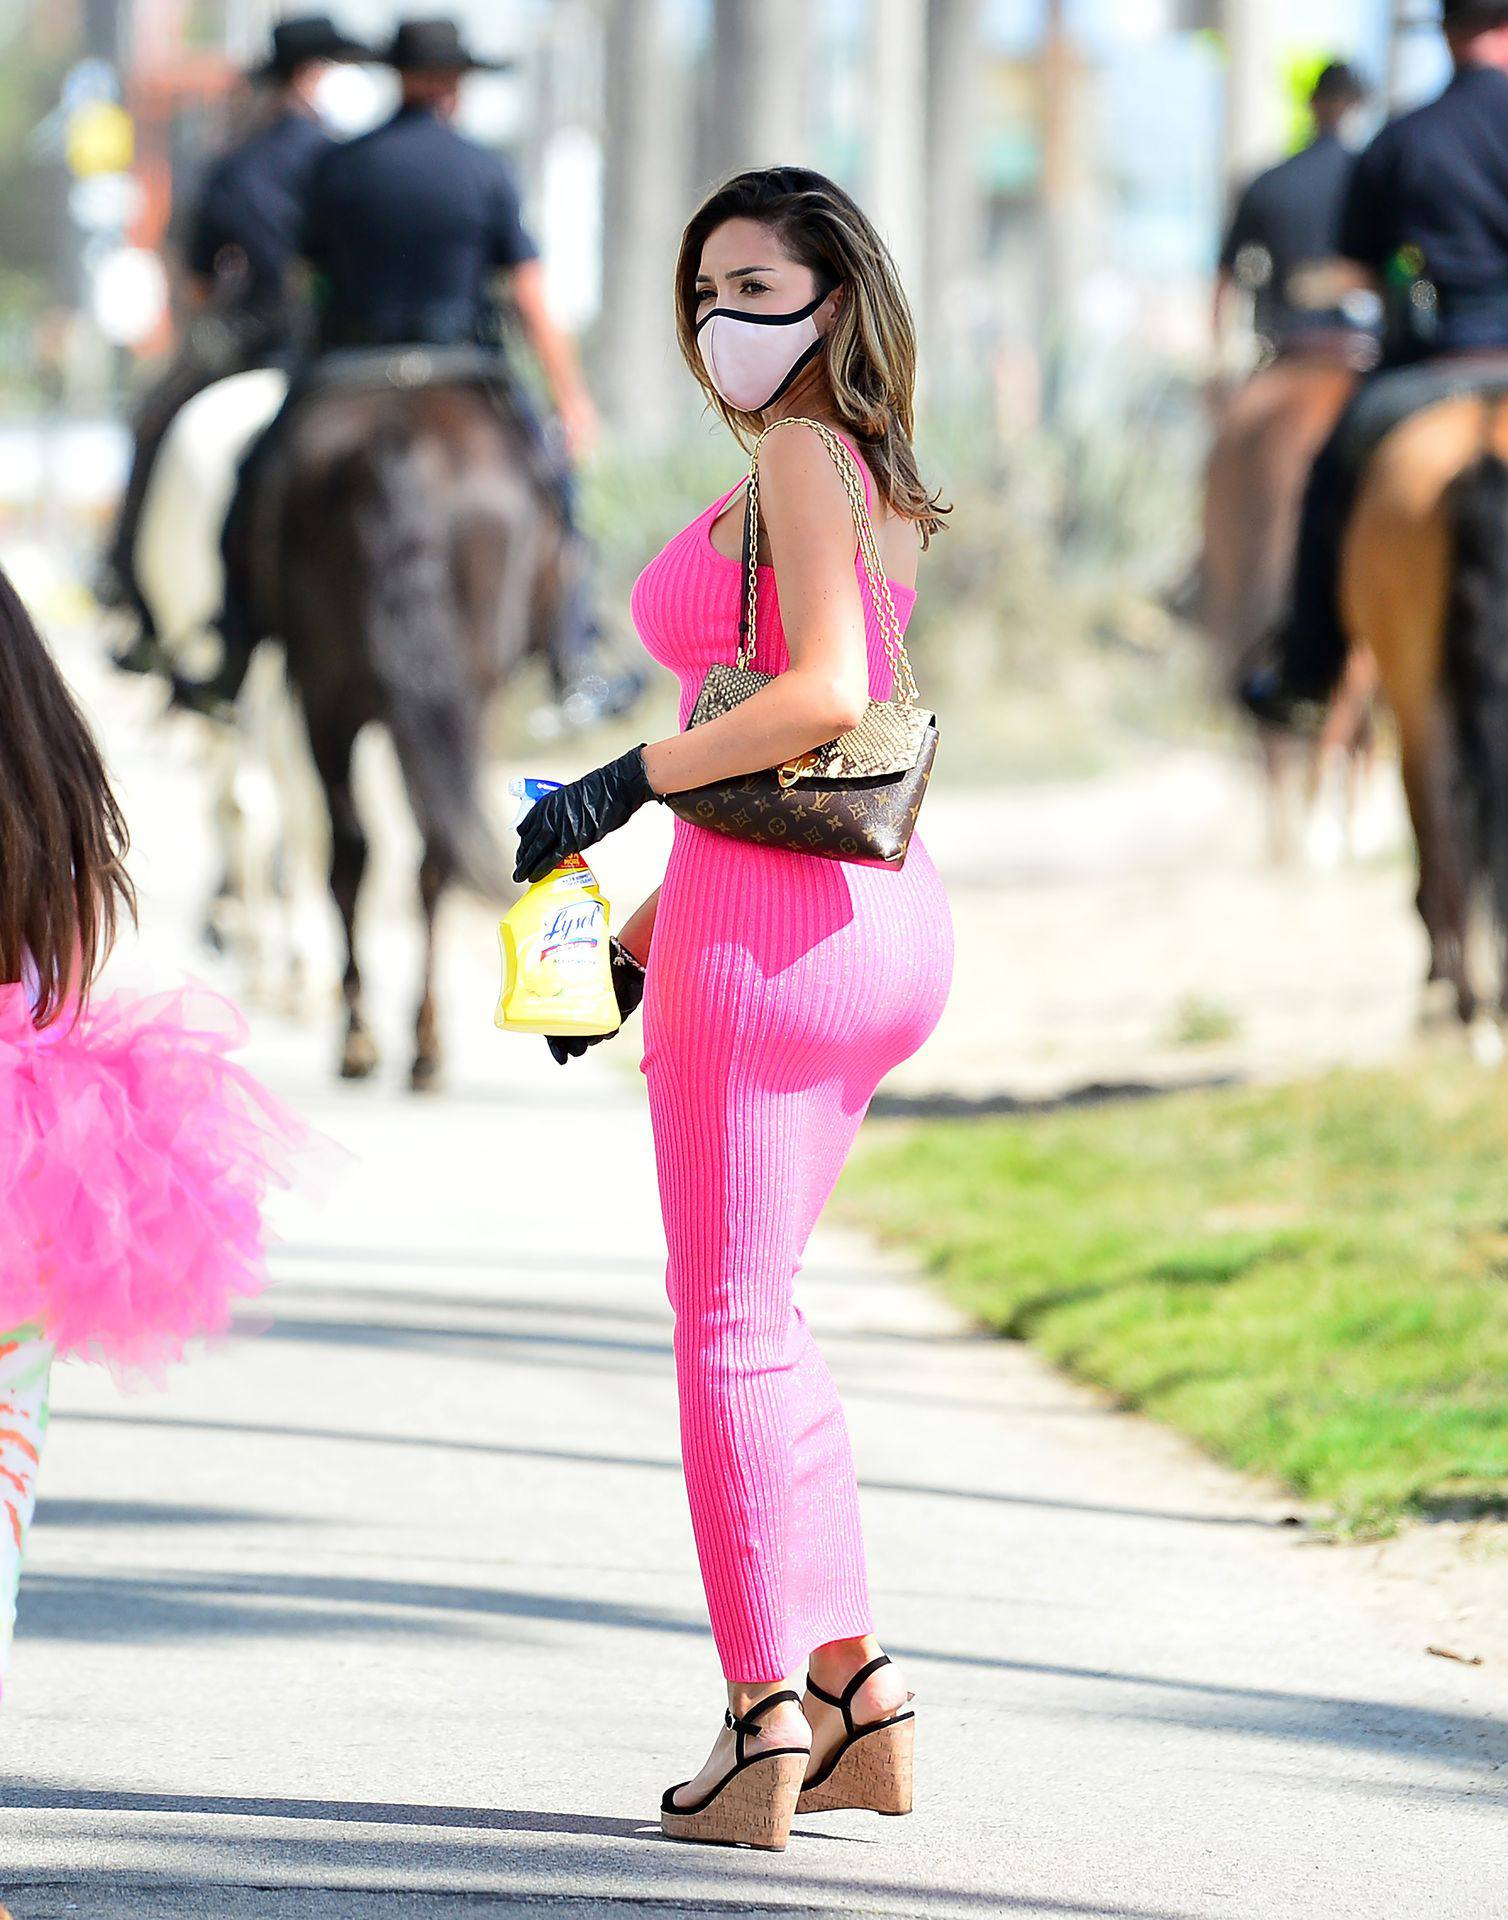 Farrah Abraham – Sexy Curvy Body In A Pink Dress Out In Los Angeles 0004